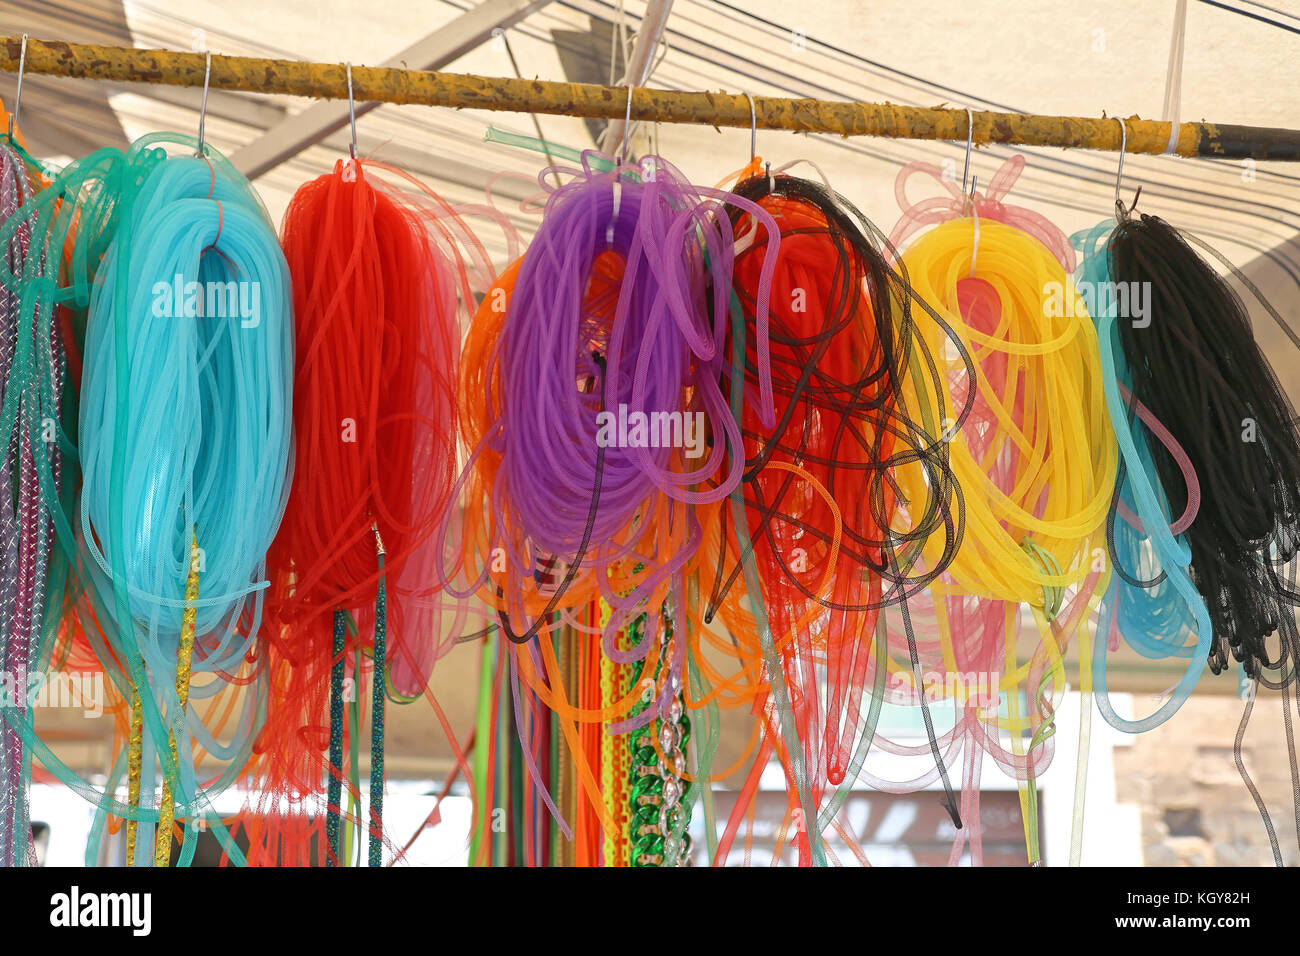 Colourful Netting Stock Photos & Colourful Netting Stock Images - Alamy